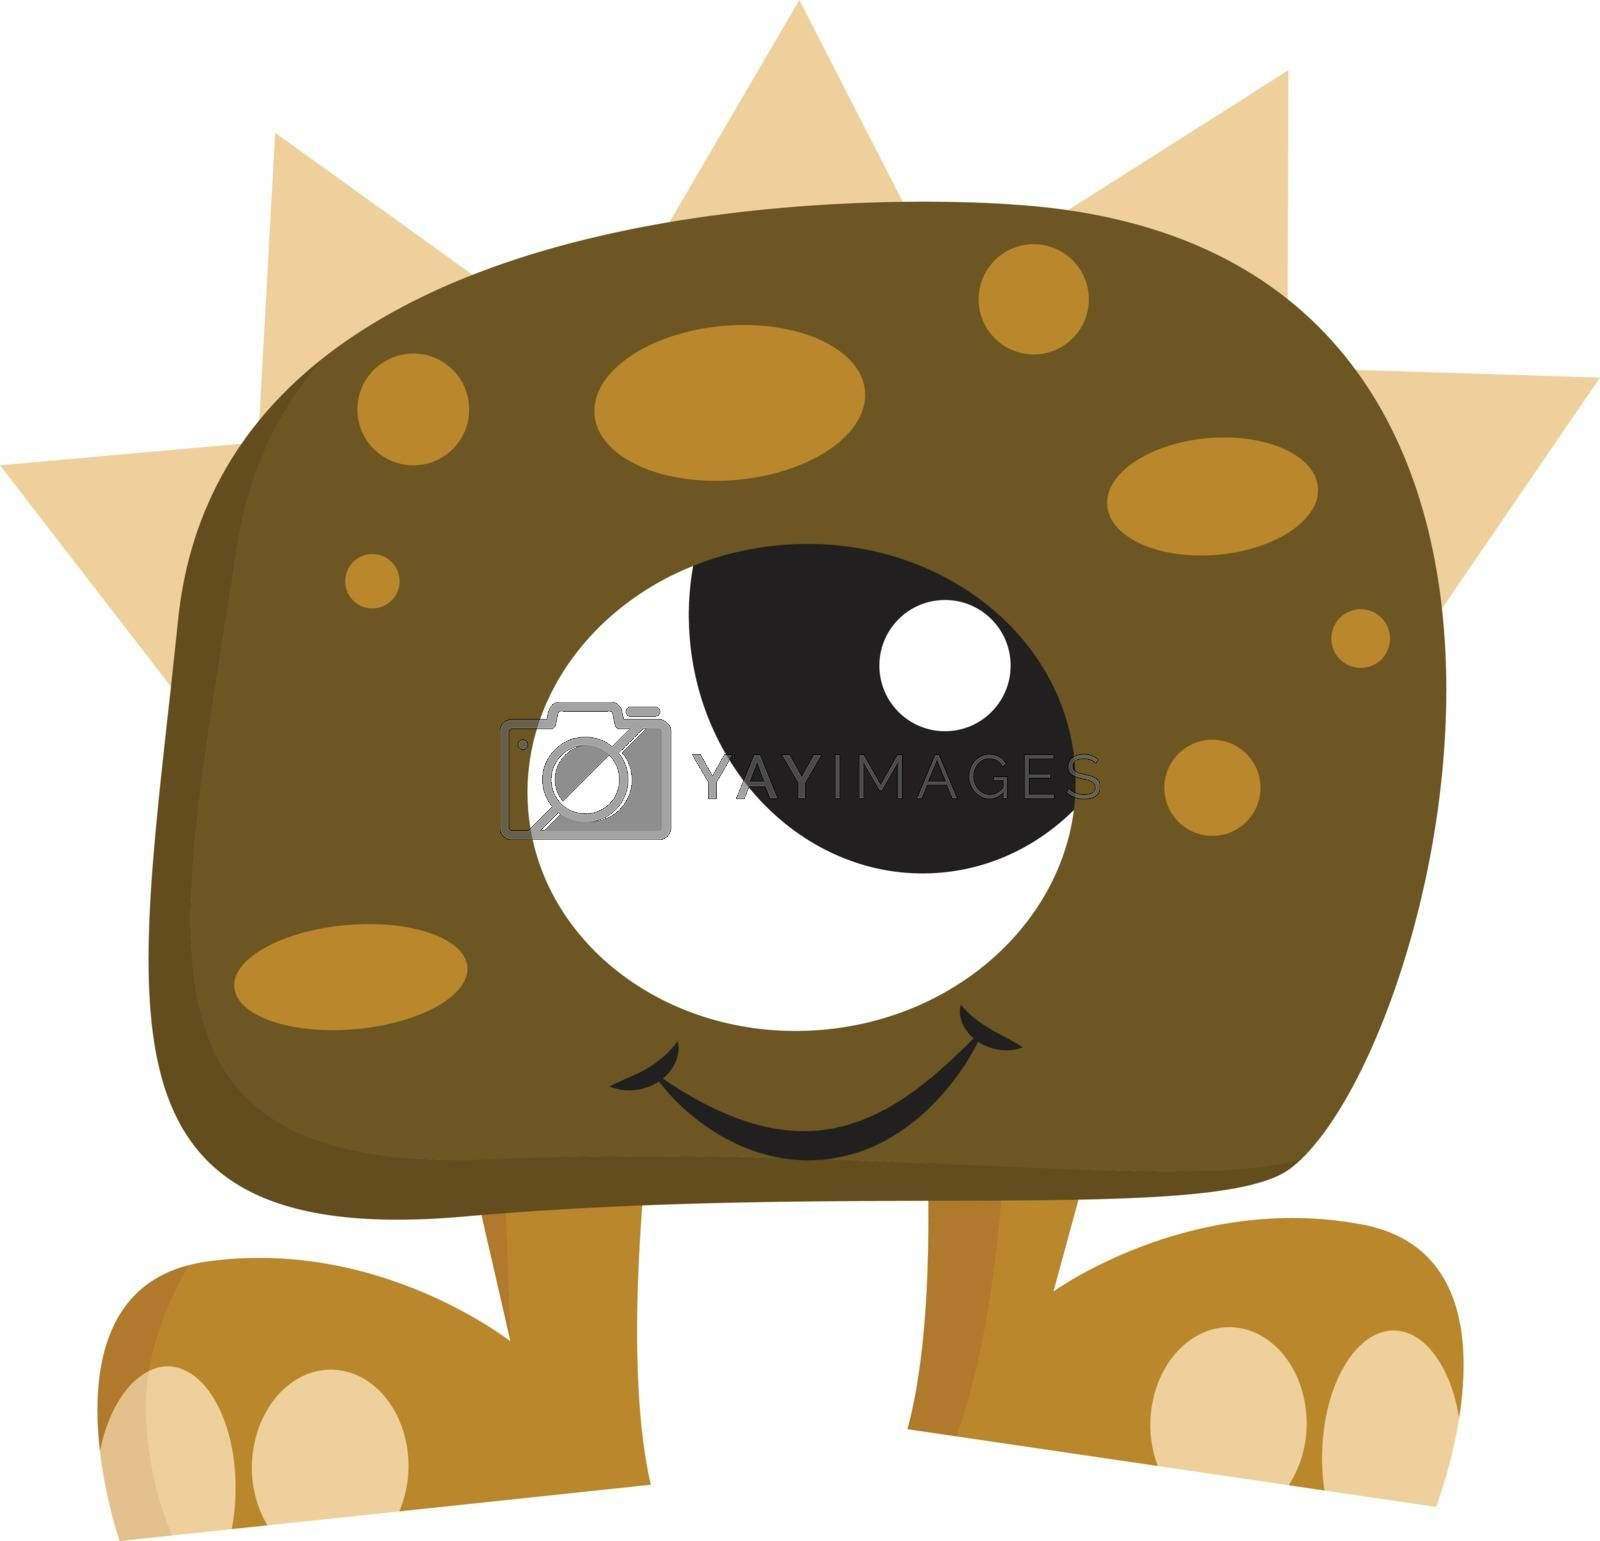 Royalty free image of Clipart of green-colored smiling monster with one big eye vector by Morphart